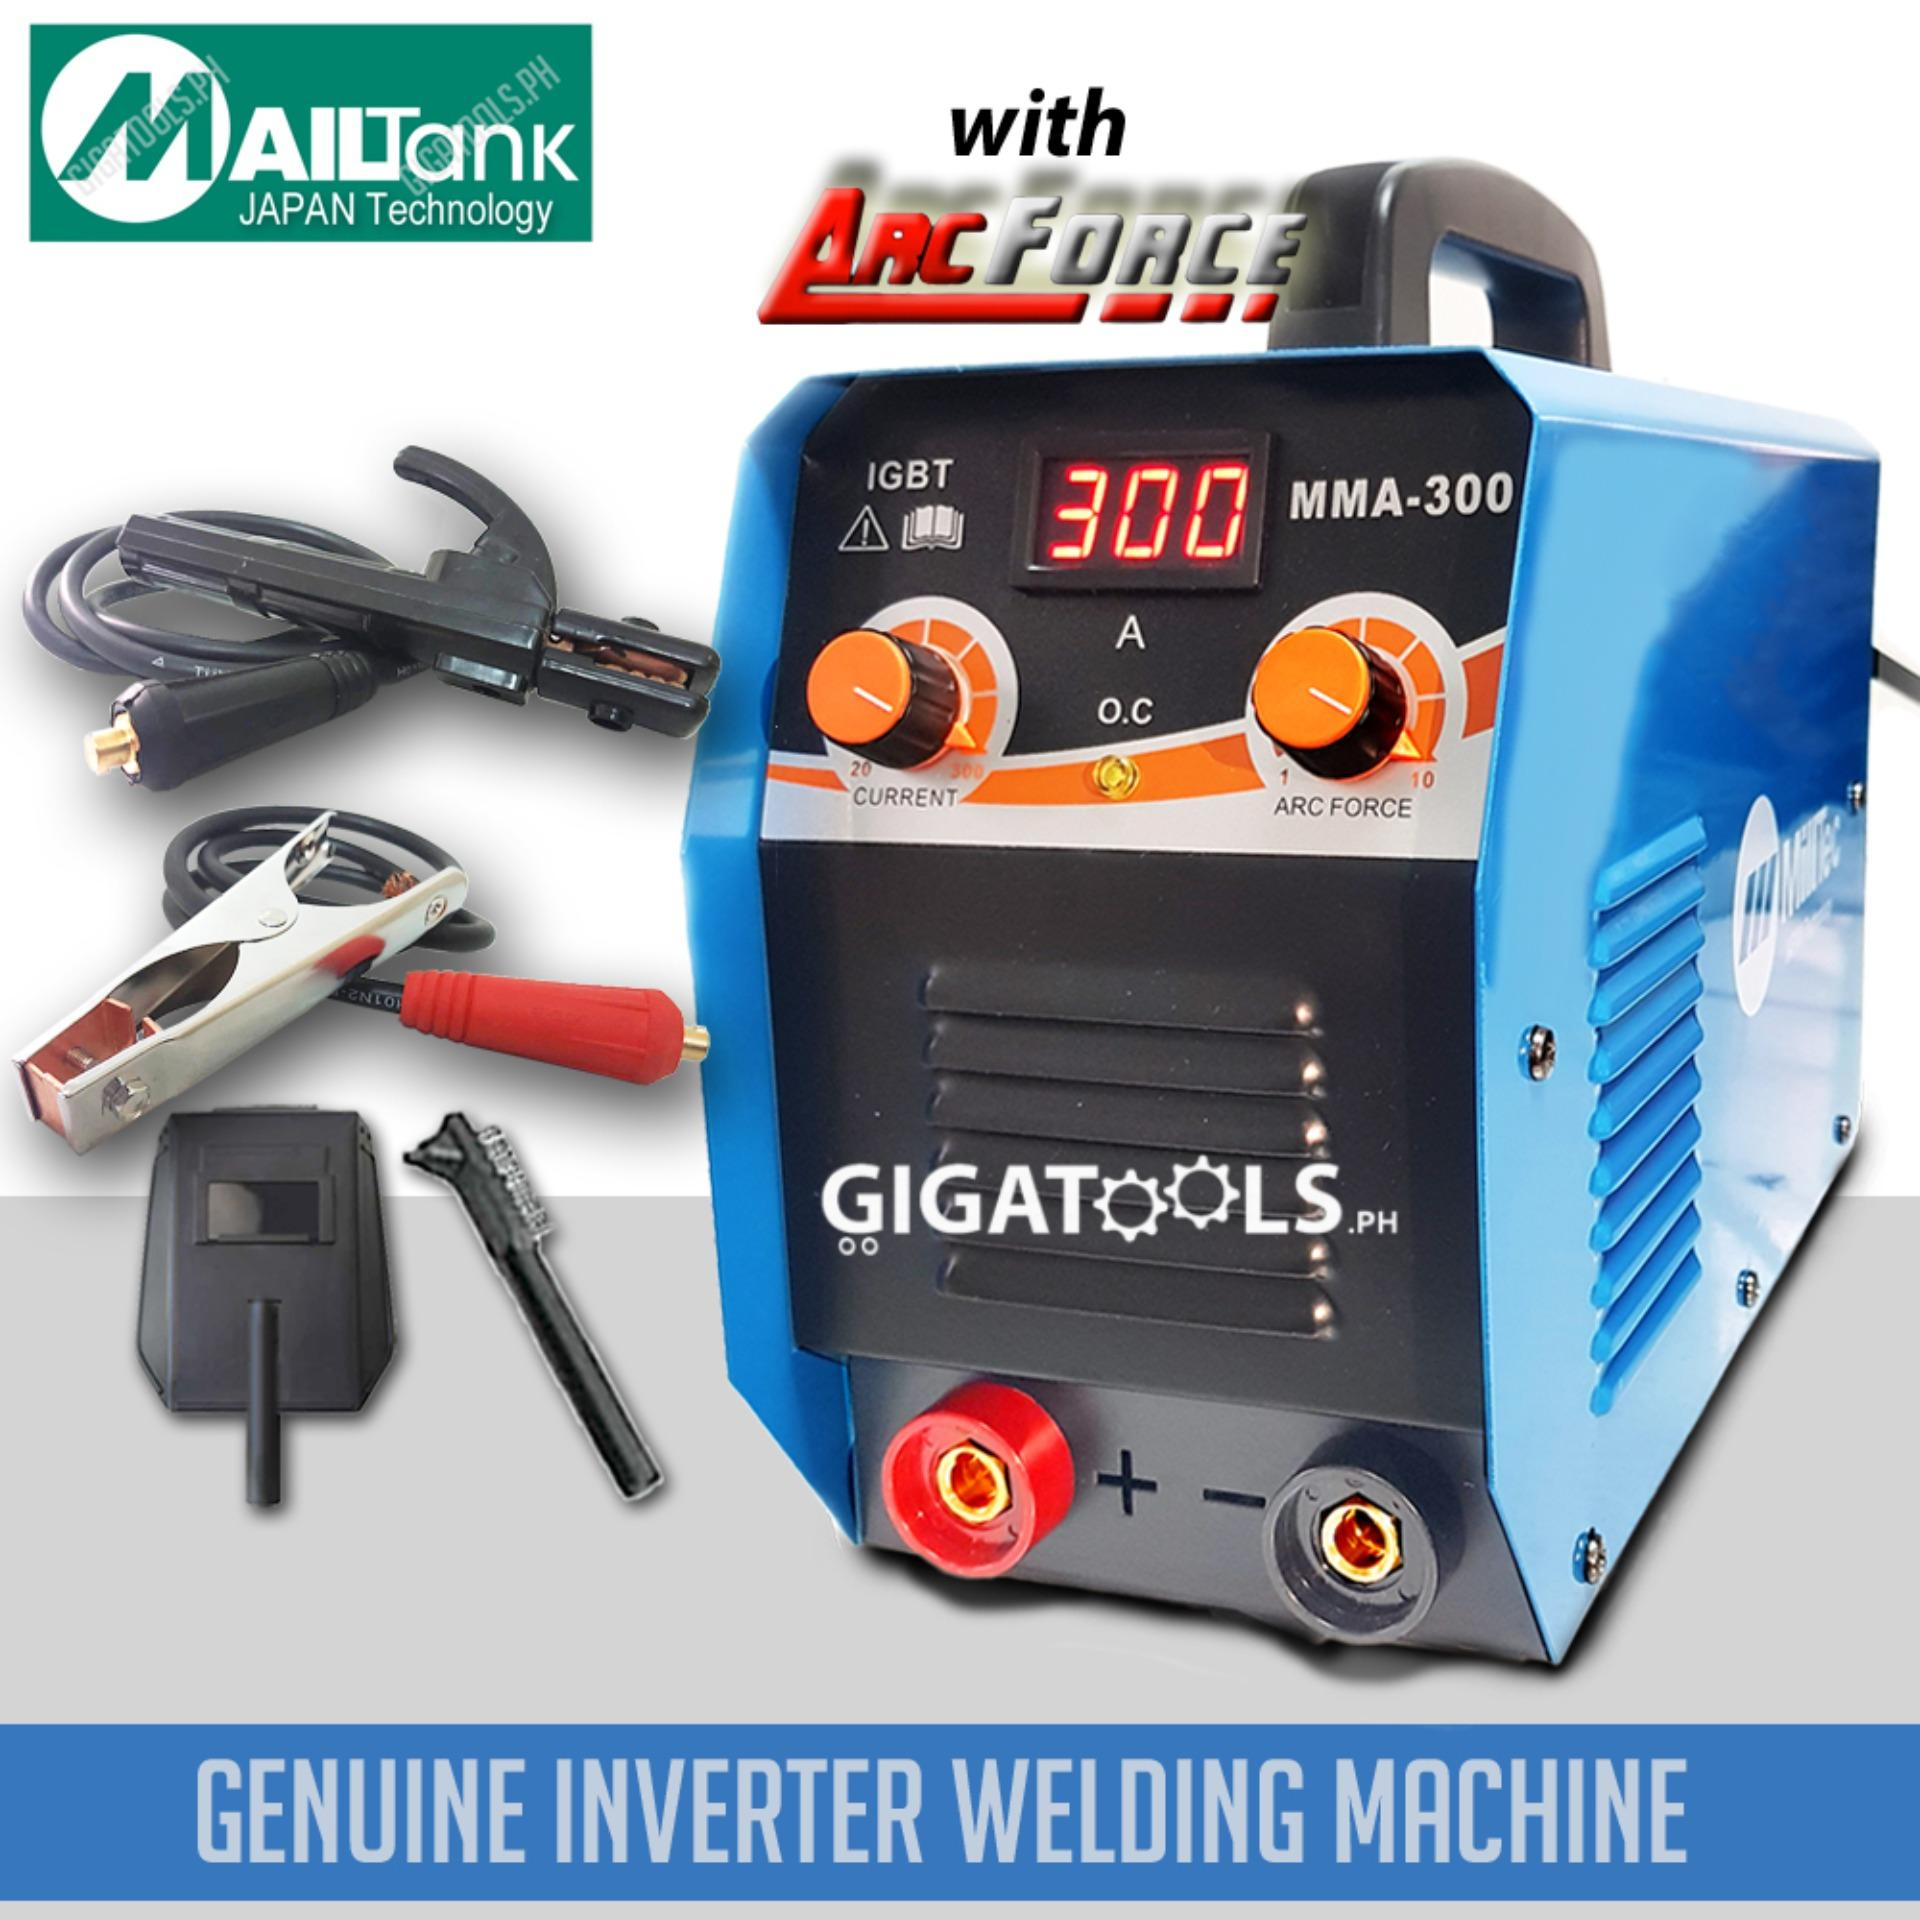 Welding For Sale Equipment Prices Brands Review In Arc Transformer Power Controller Circuit New Mailtank Mma 300g With Force Inverter Igbt Machine